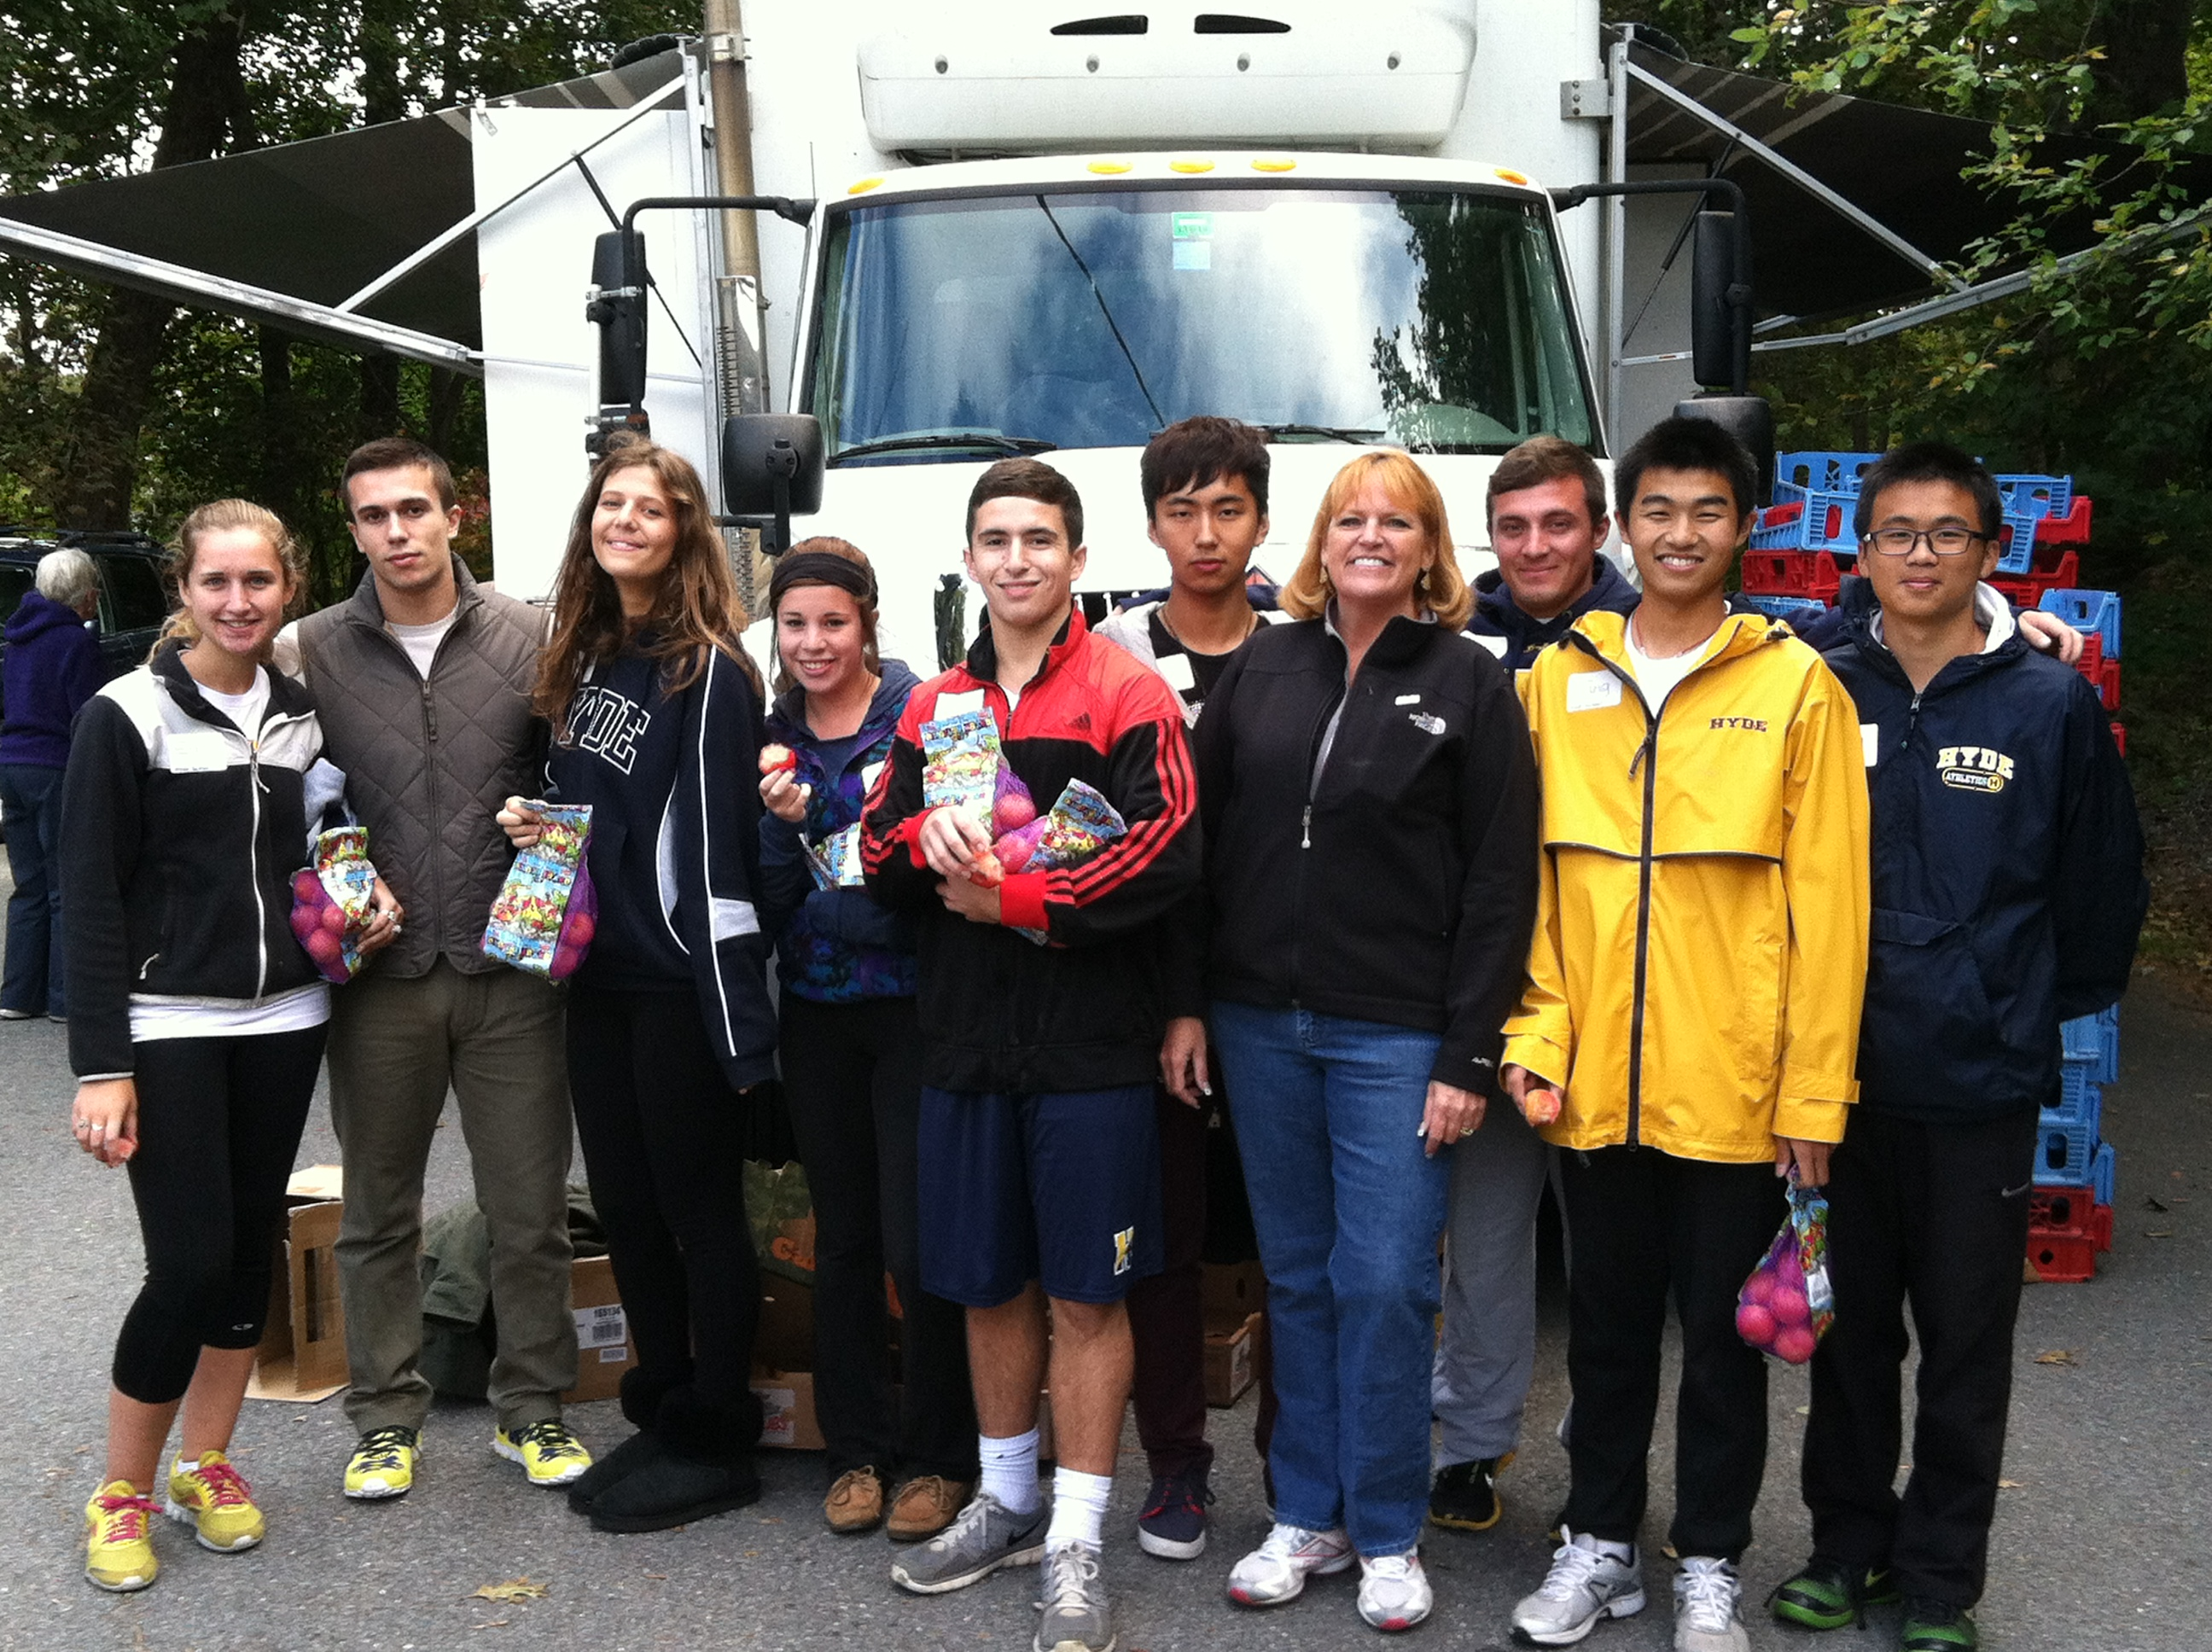 Hyde School Students helping at Food Truck